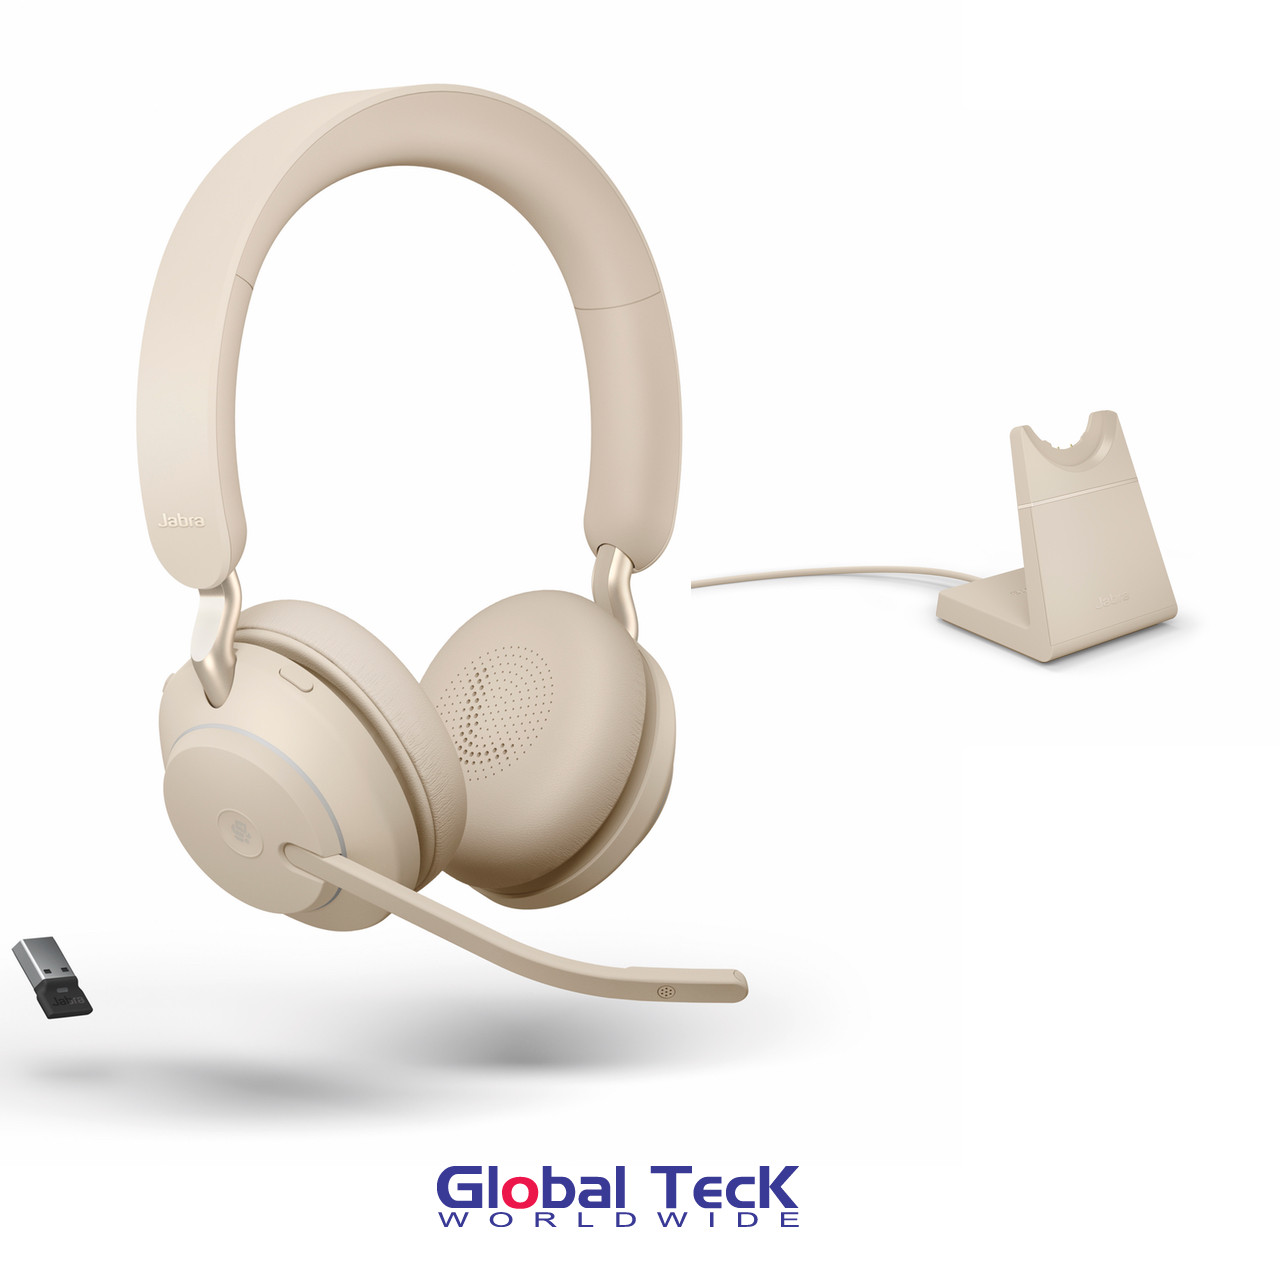 Jabra Evolve2 65 Stereo Wireless Headset Beige Ms Version Includes Usb Bluetooth Dongle And Charging Stand Compatible With Windows Pc Mac Smartphone Streaming Music Skype Ip Communications 26599 999 988